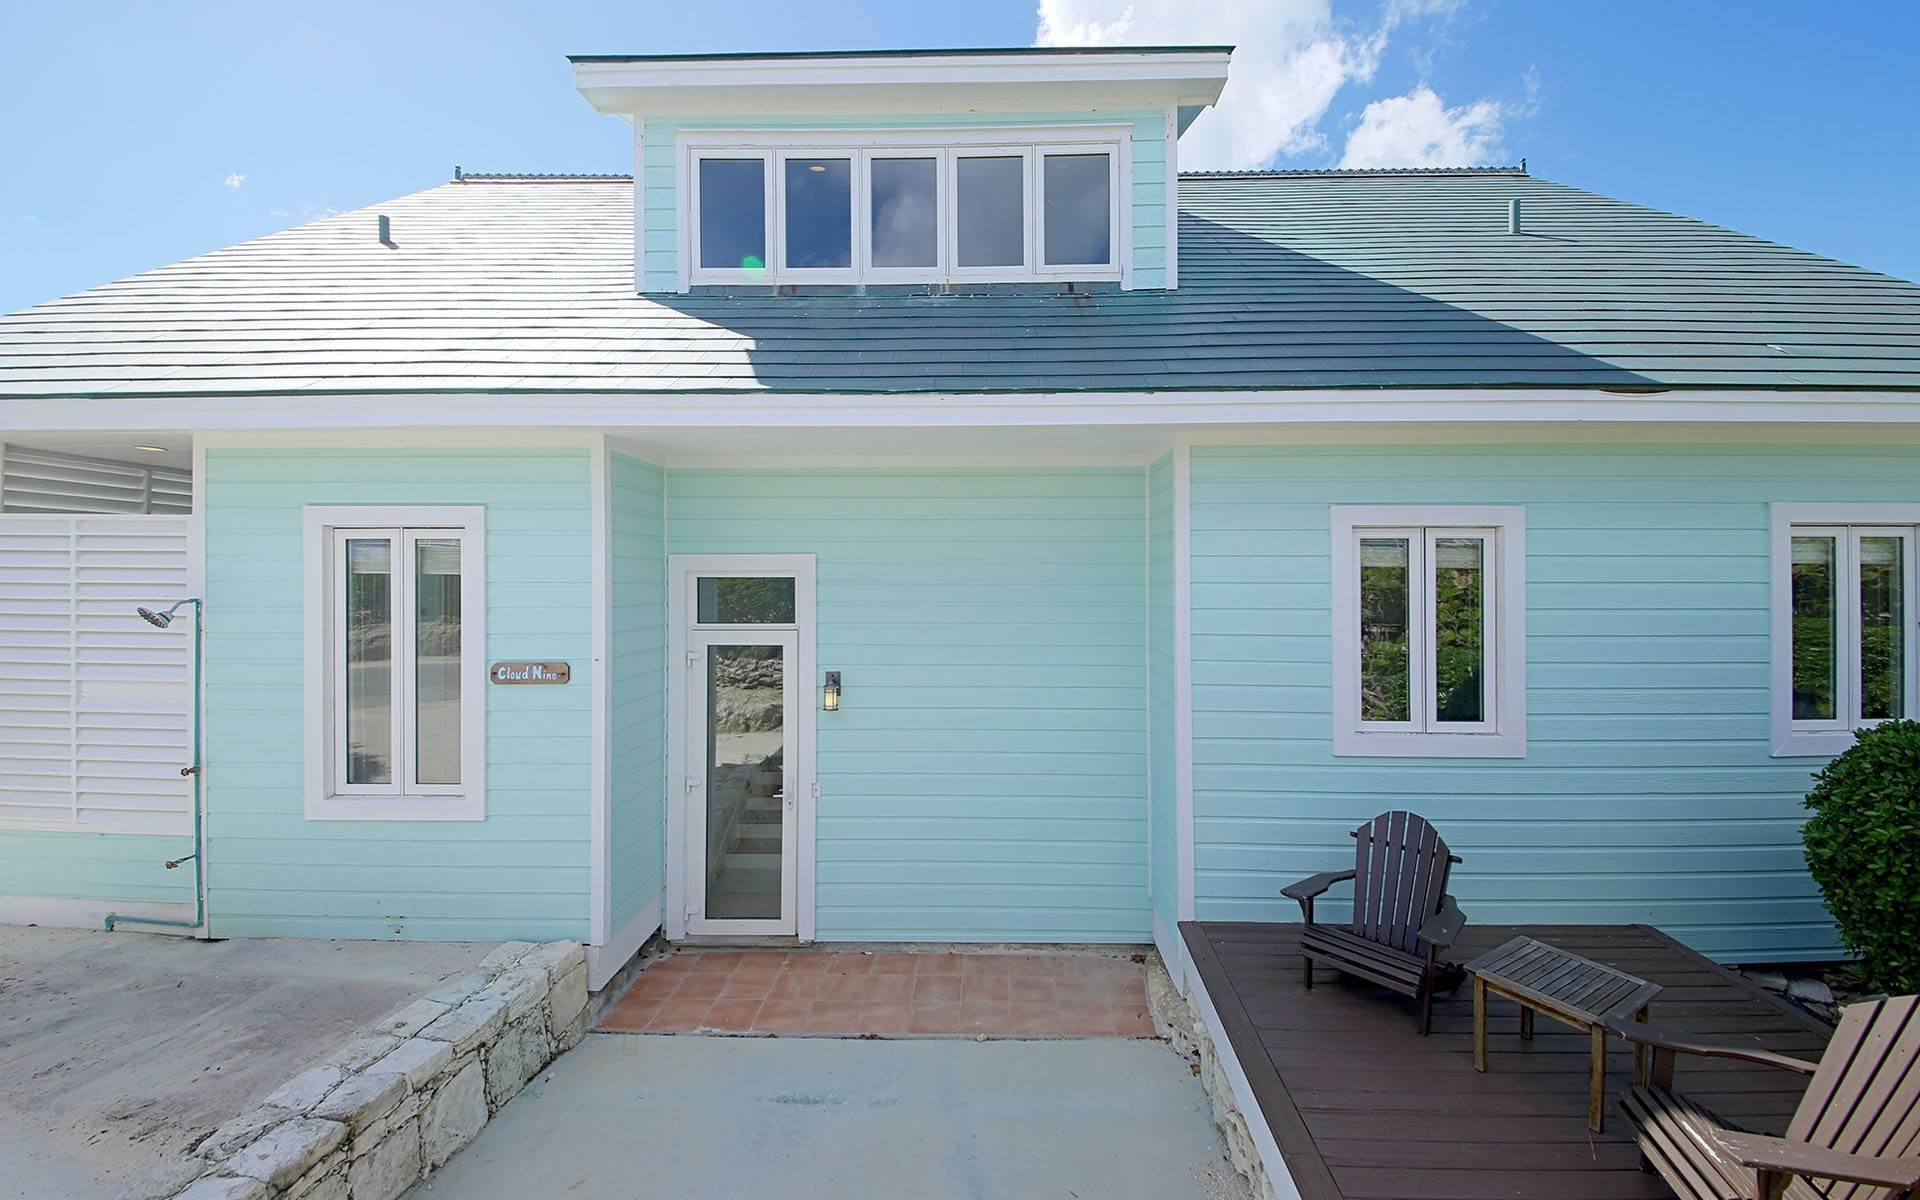 Single Family Homes for Sale at Cloud Nine Winding Bay - MLS 32282 Winding Bay, Abaco, Bahamas